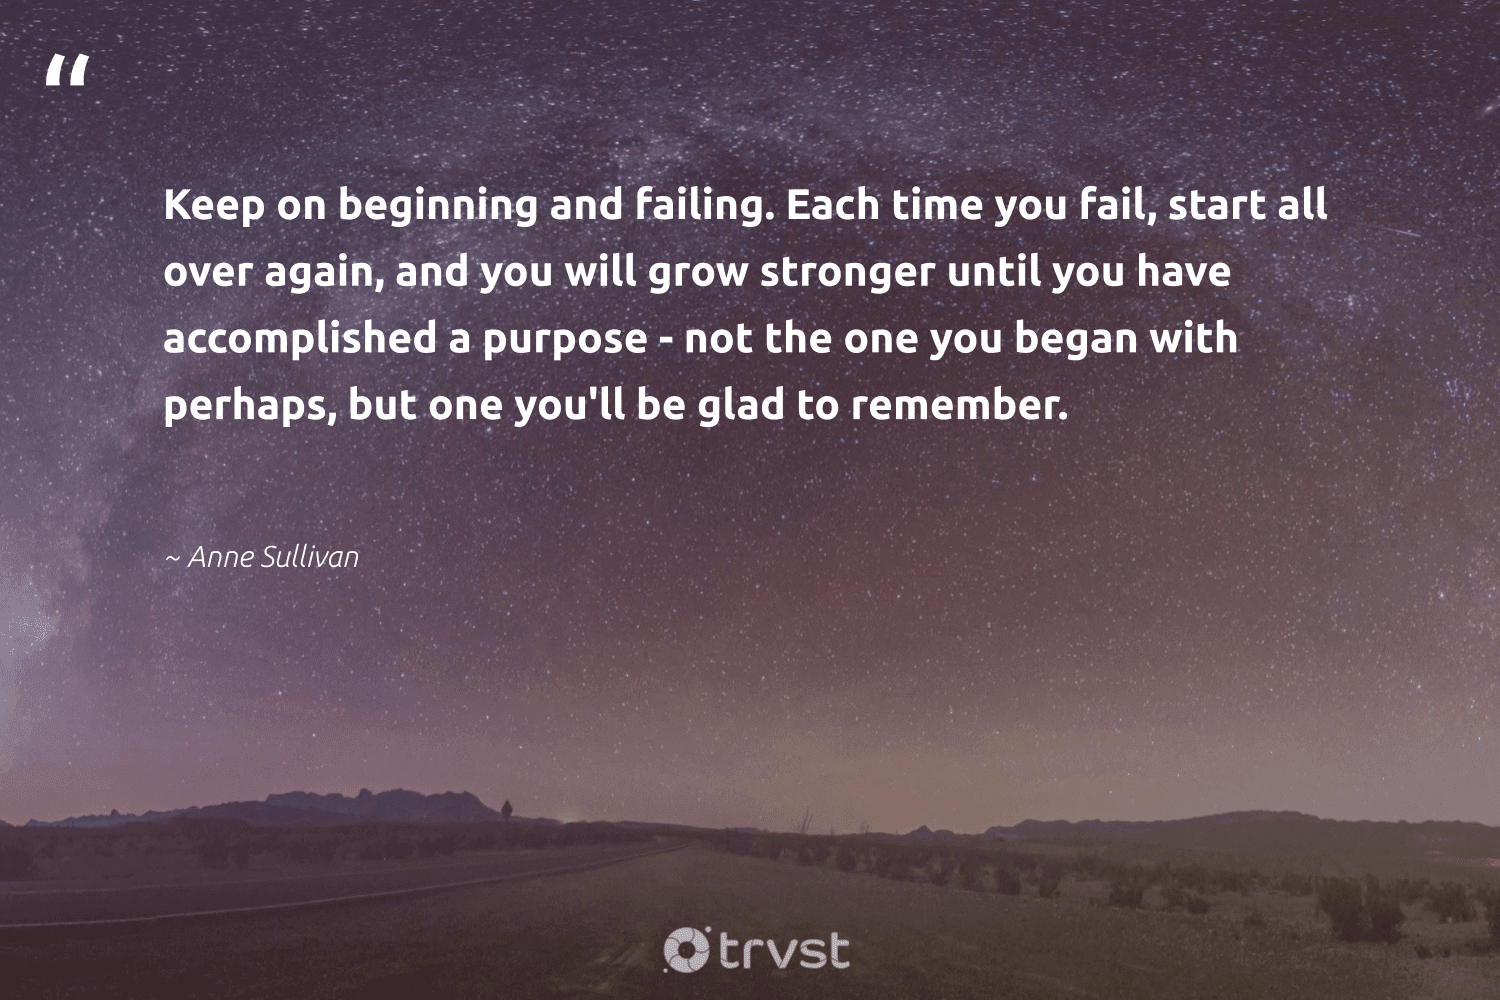 """""""Keep on beginning and failing. Each time you fail, start all over again, and you will grow stronger until you have accomplished a purpose - not the one you began with perhaps, but one you'll be glad to remember.""""  - Anne Sullivan #trvst #quotes #purpose #findingpupose #begreat #togetherwecan #thinkgreen #purposedriven #mindset #changemakers #dosomething #findpurpose"""